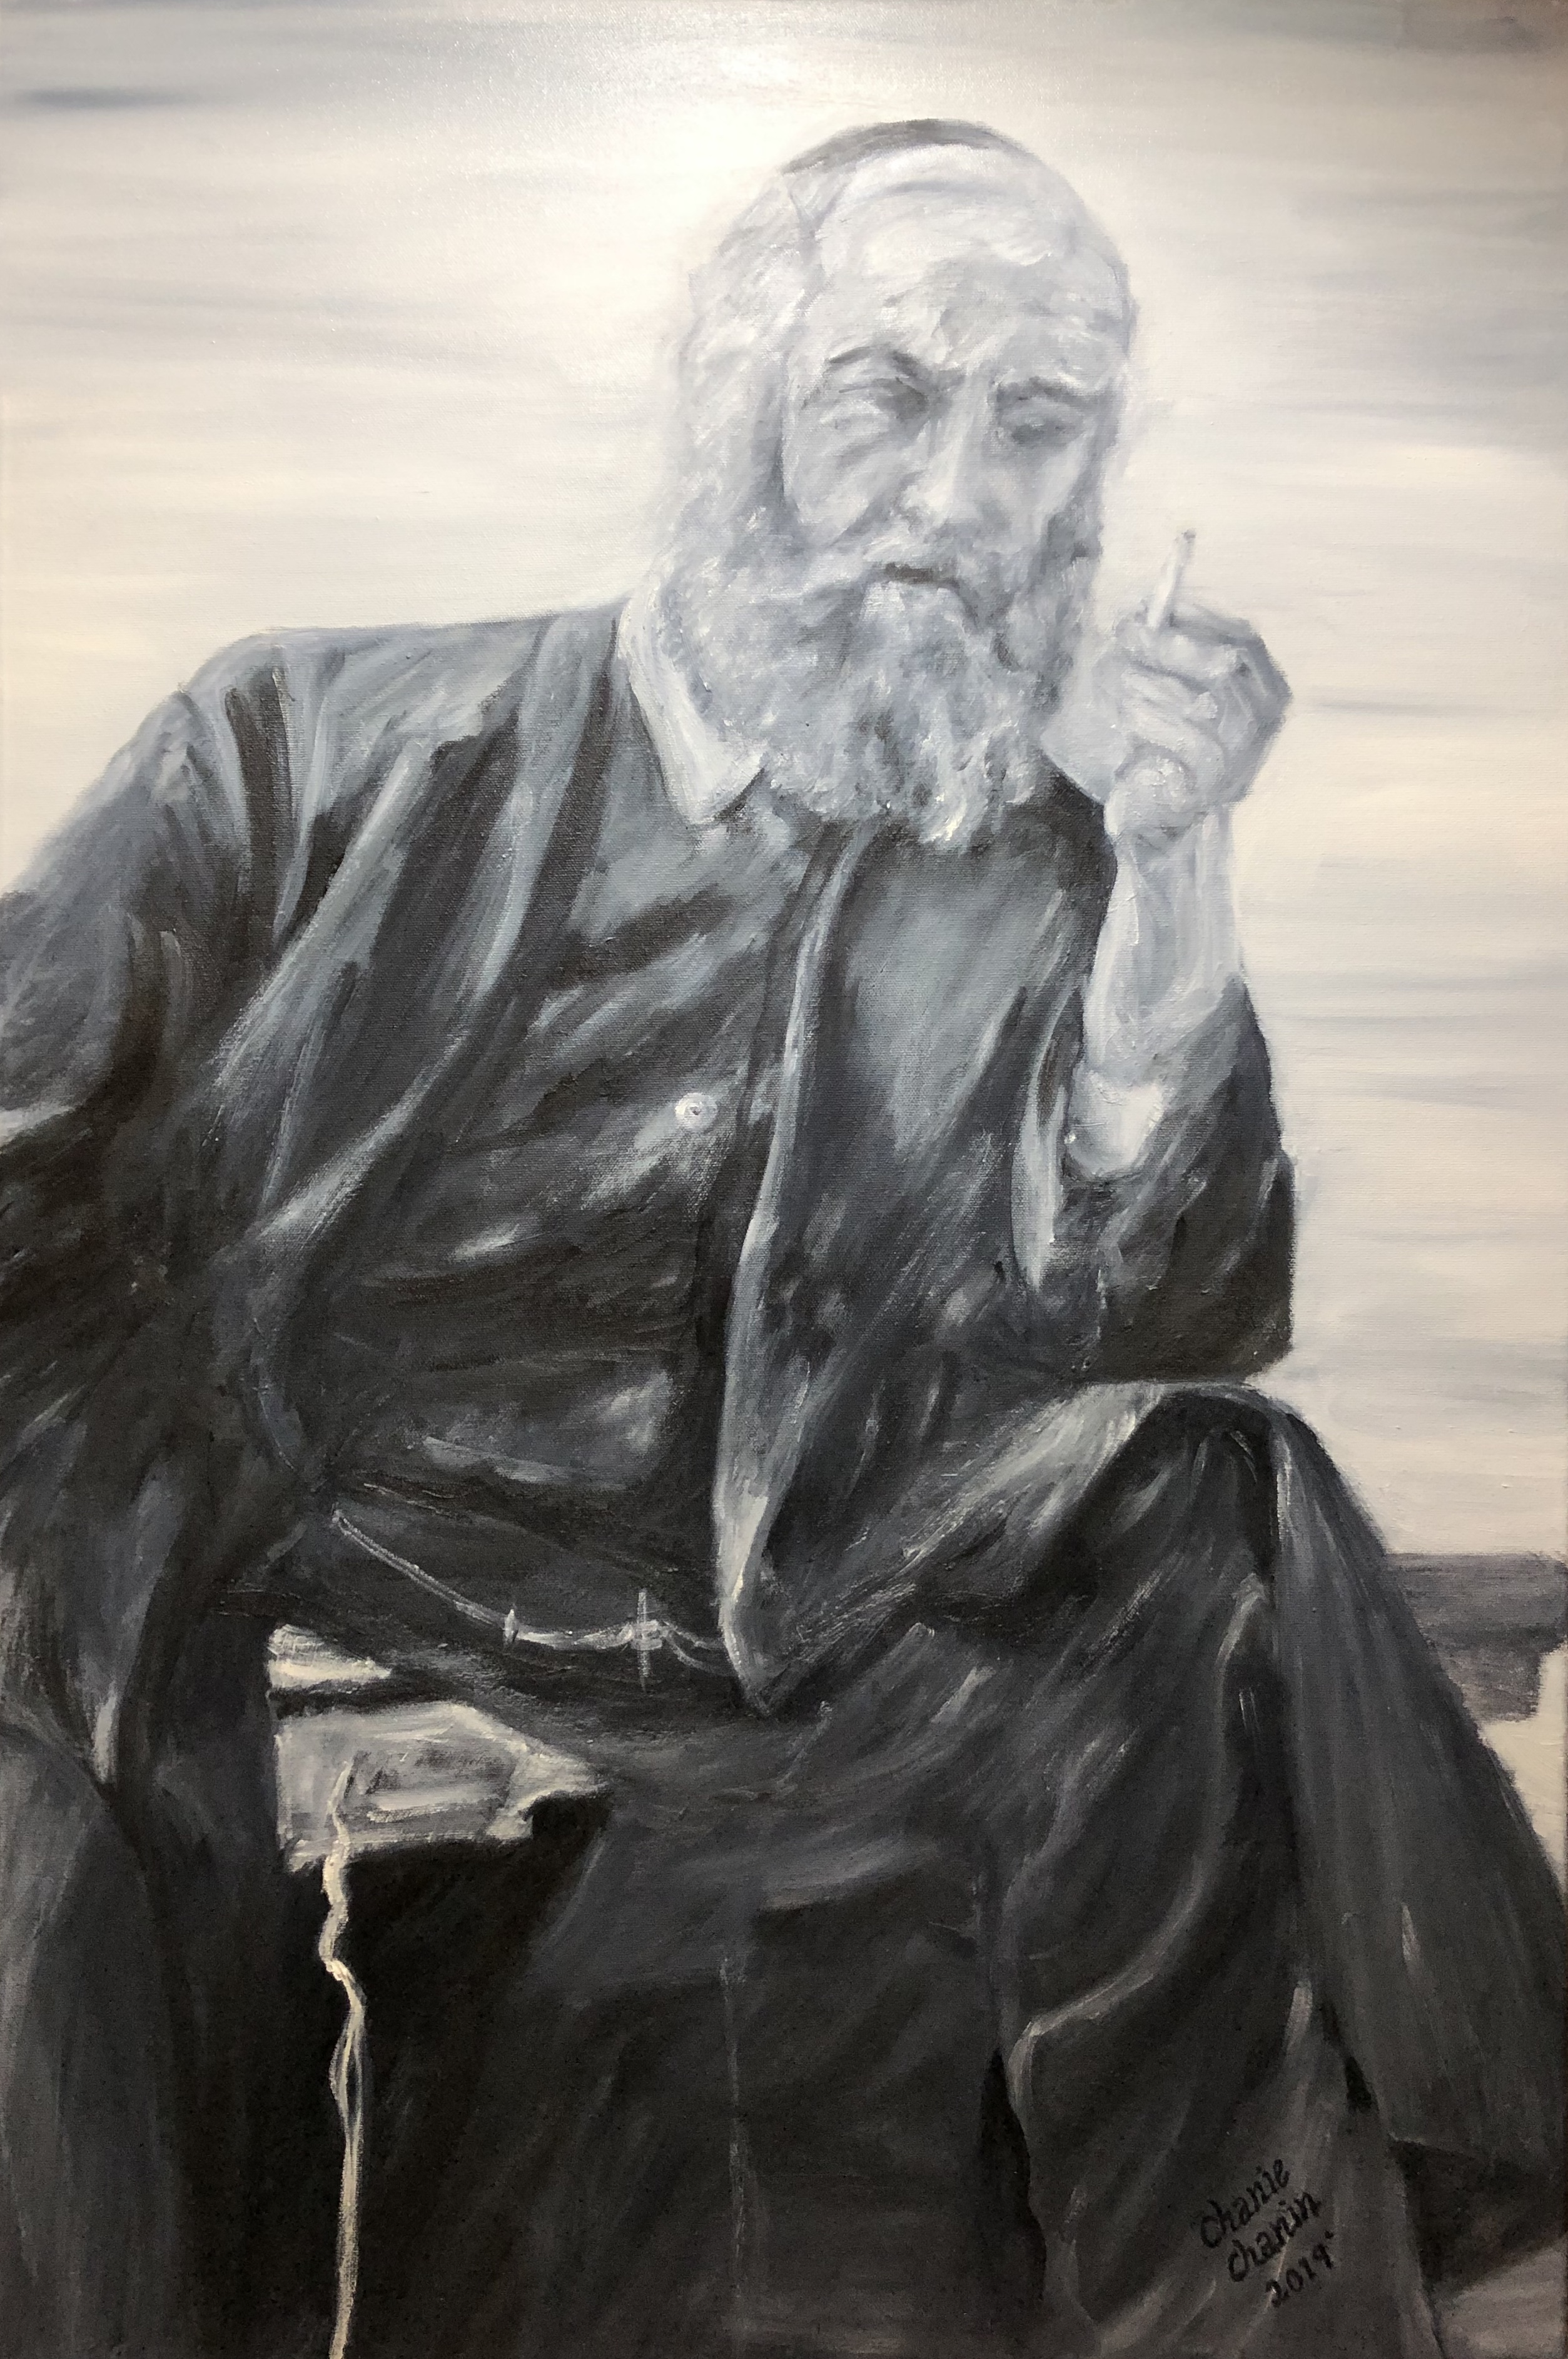 Rebbe - deep in thought